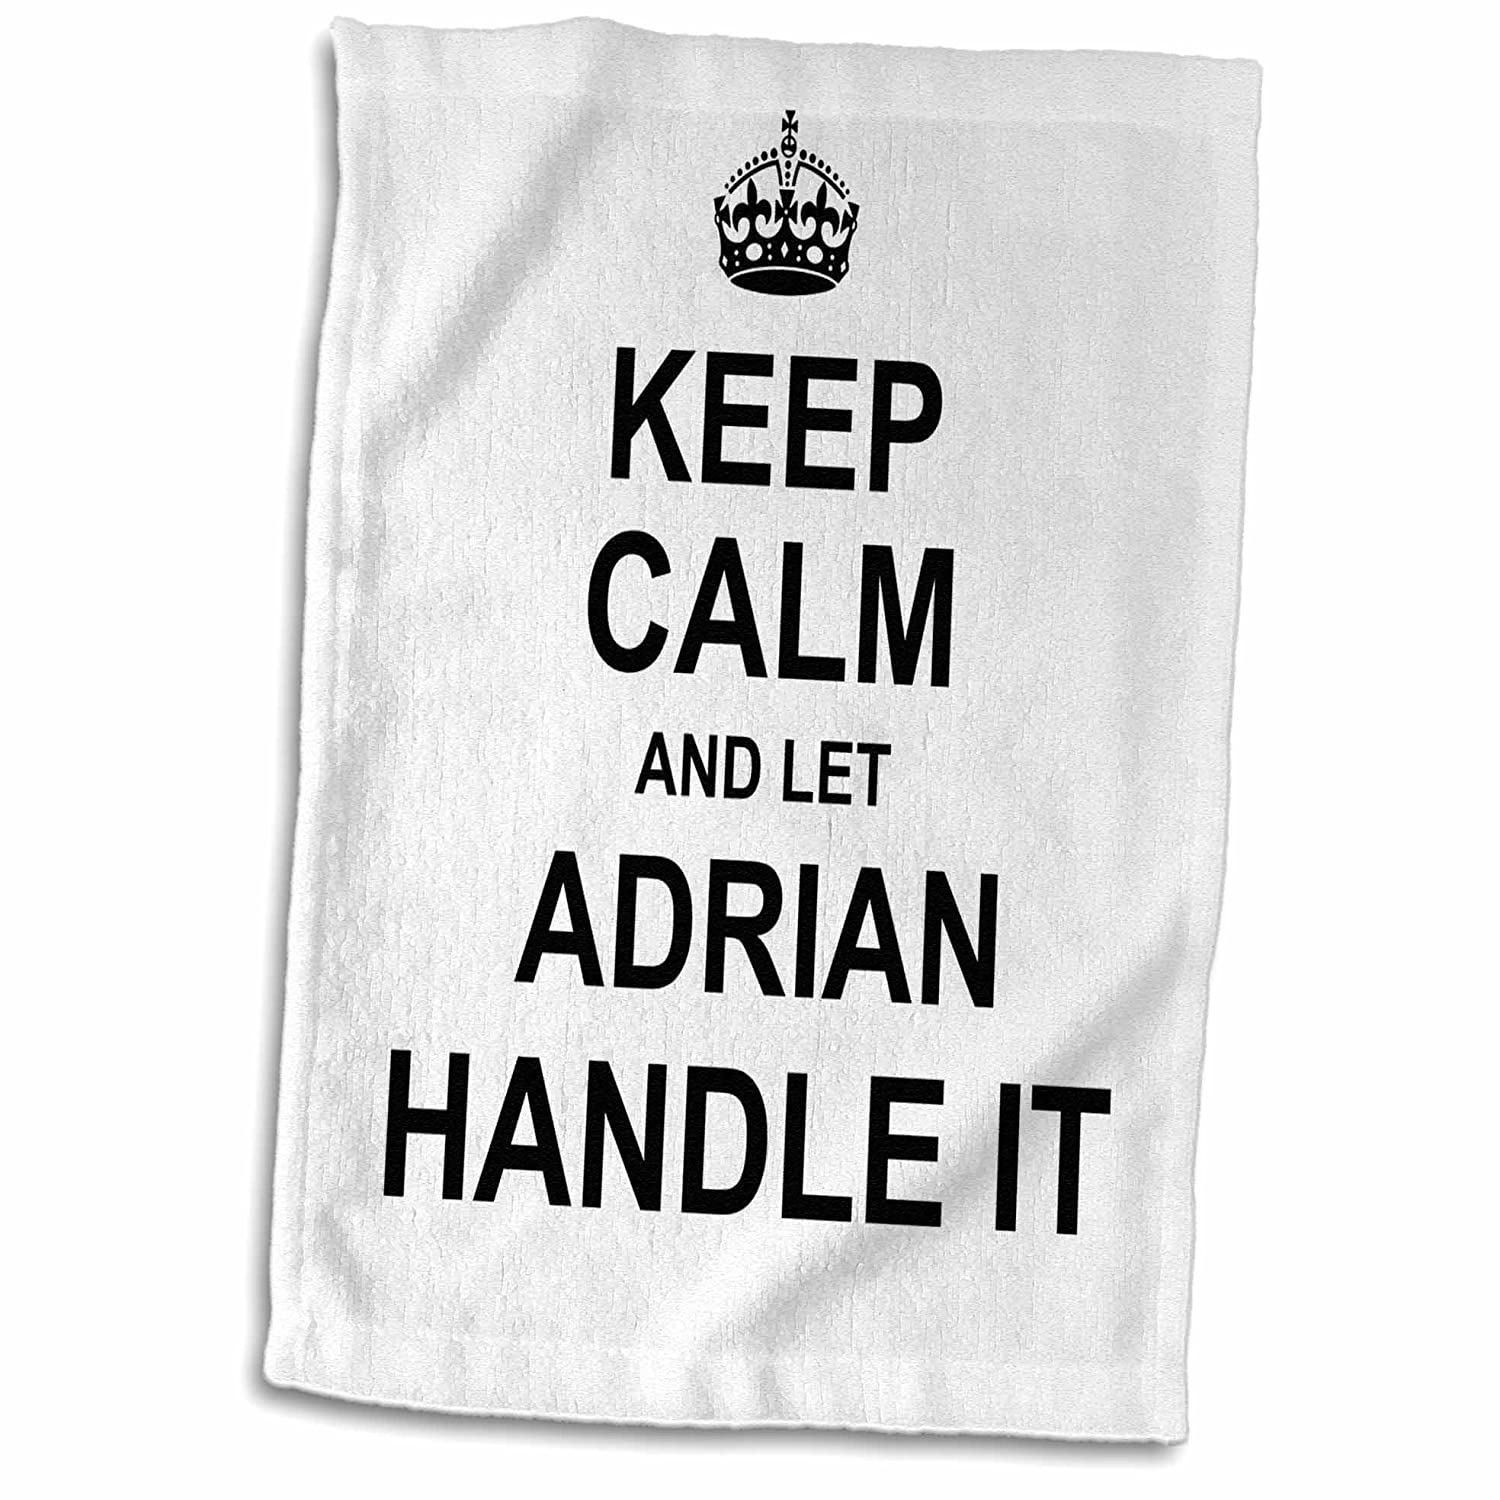 3D Rose Keep Calm and Let Adrian Handle It-Funny Personal Name Hand Towel 15' x 22'